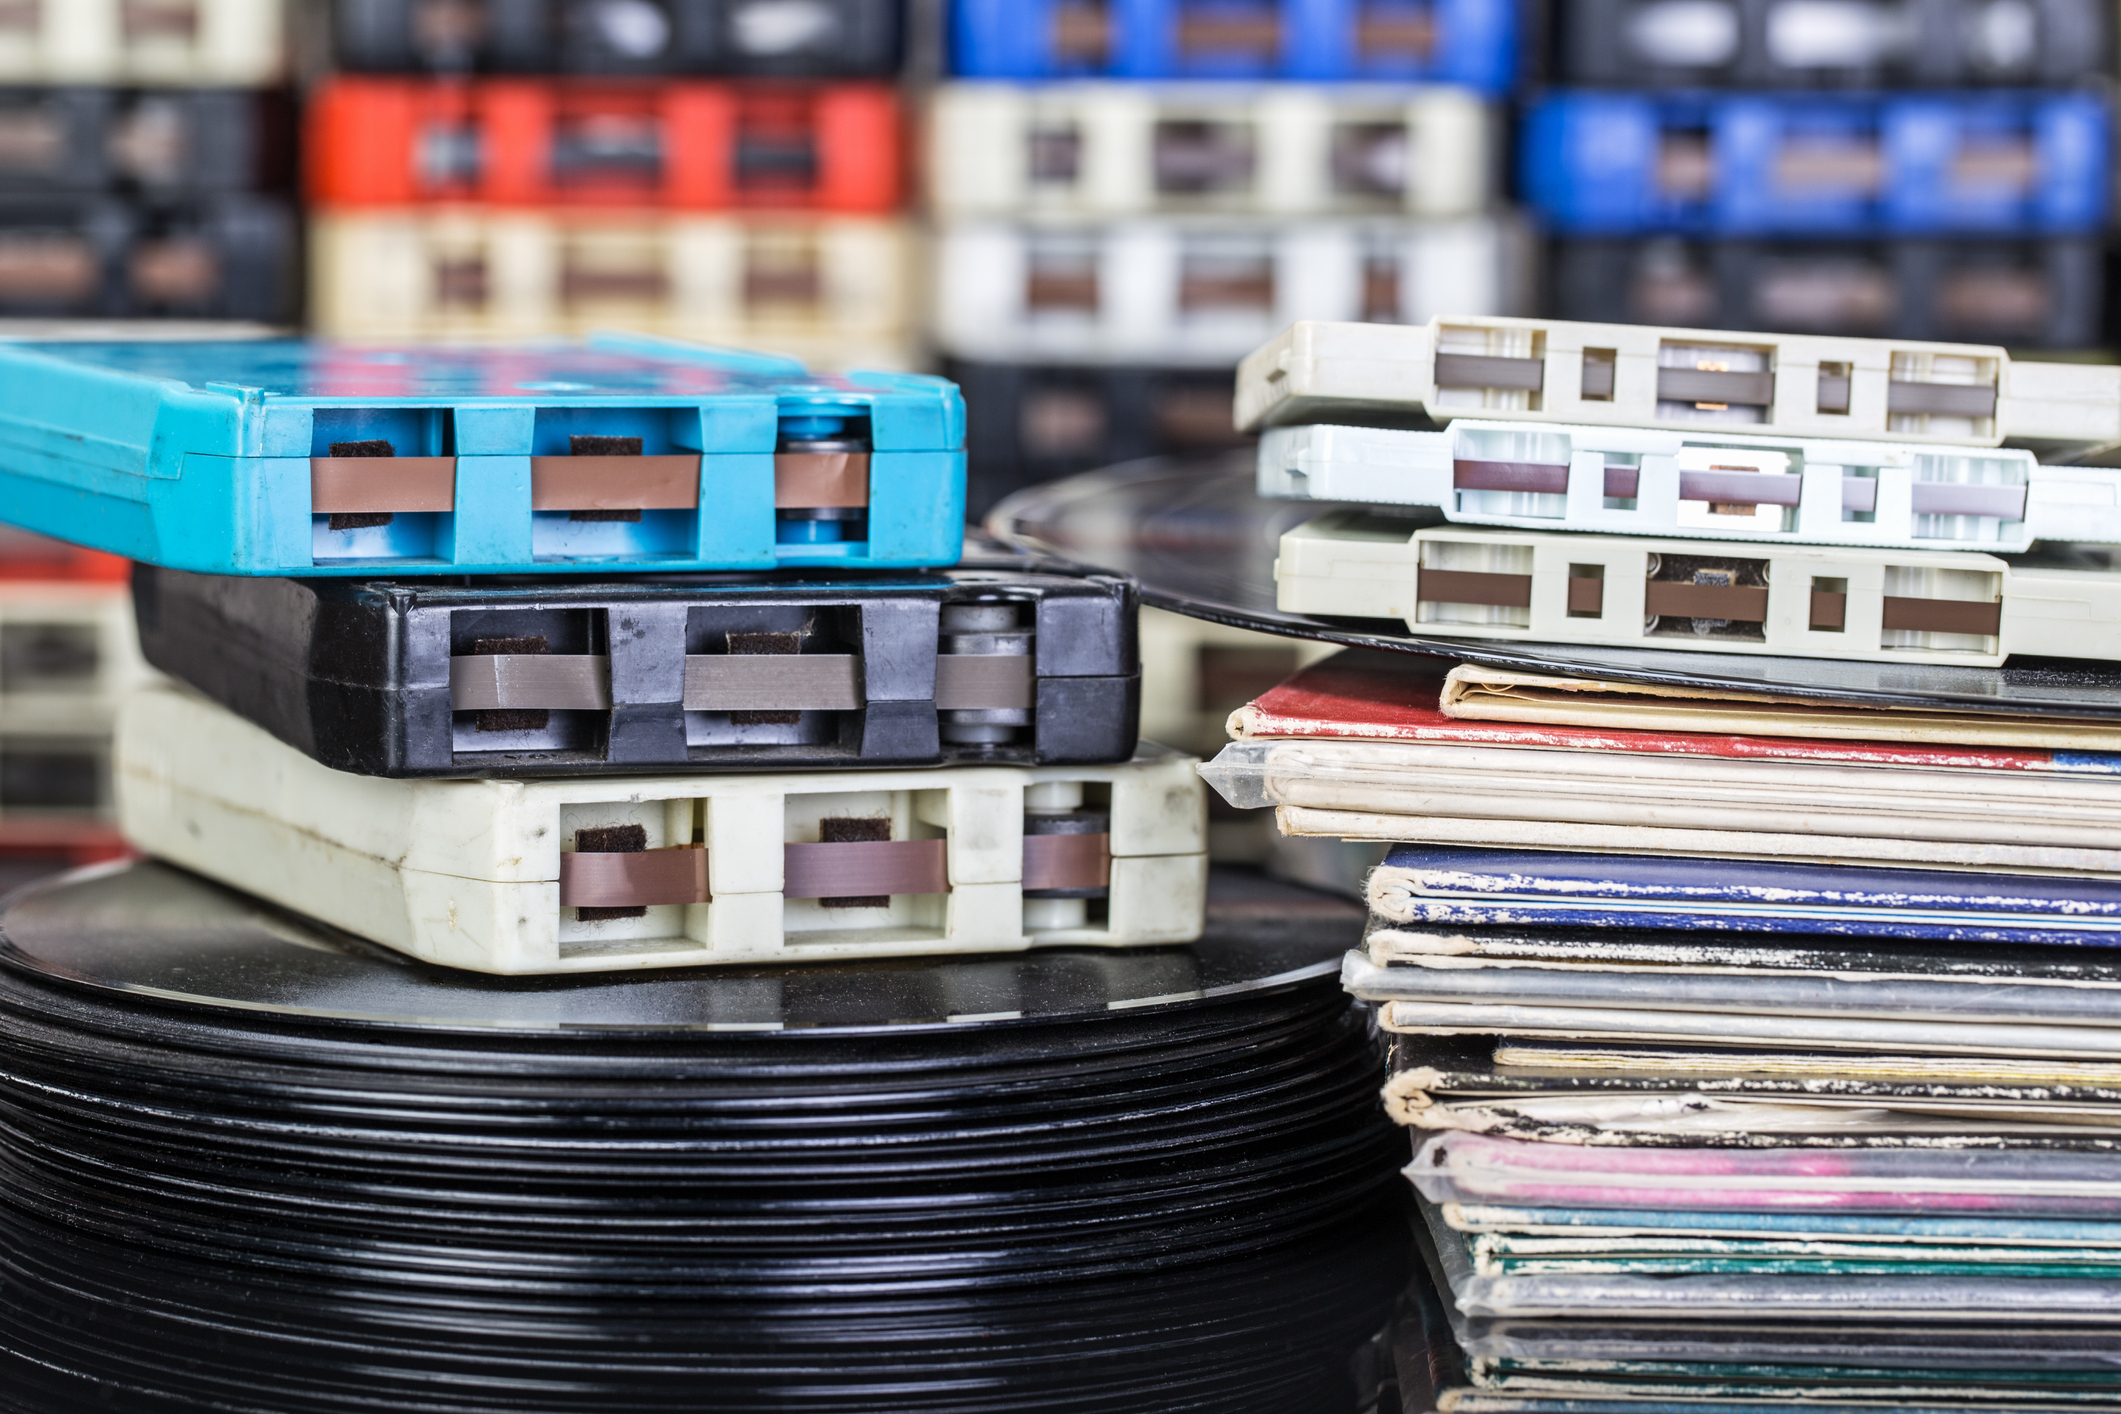 A collection of 33 rpm record albums, 45 rpm records, 8-track and cassette tapes.